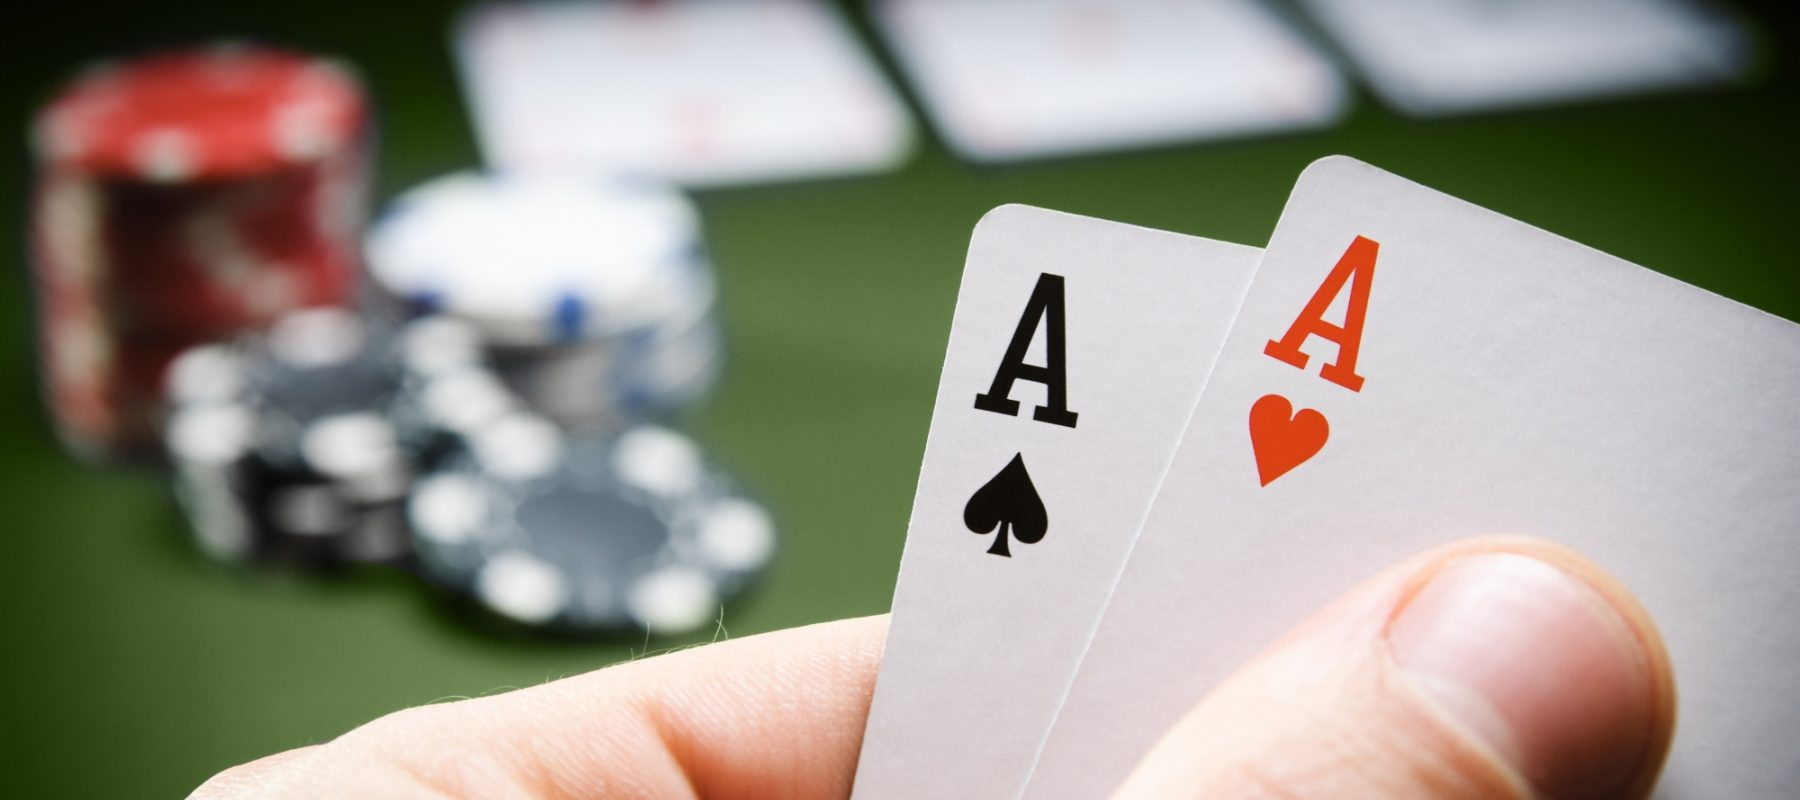 Simple yet effective tips to gamble online